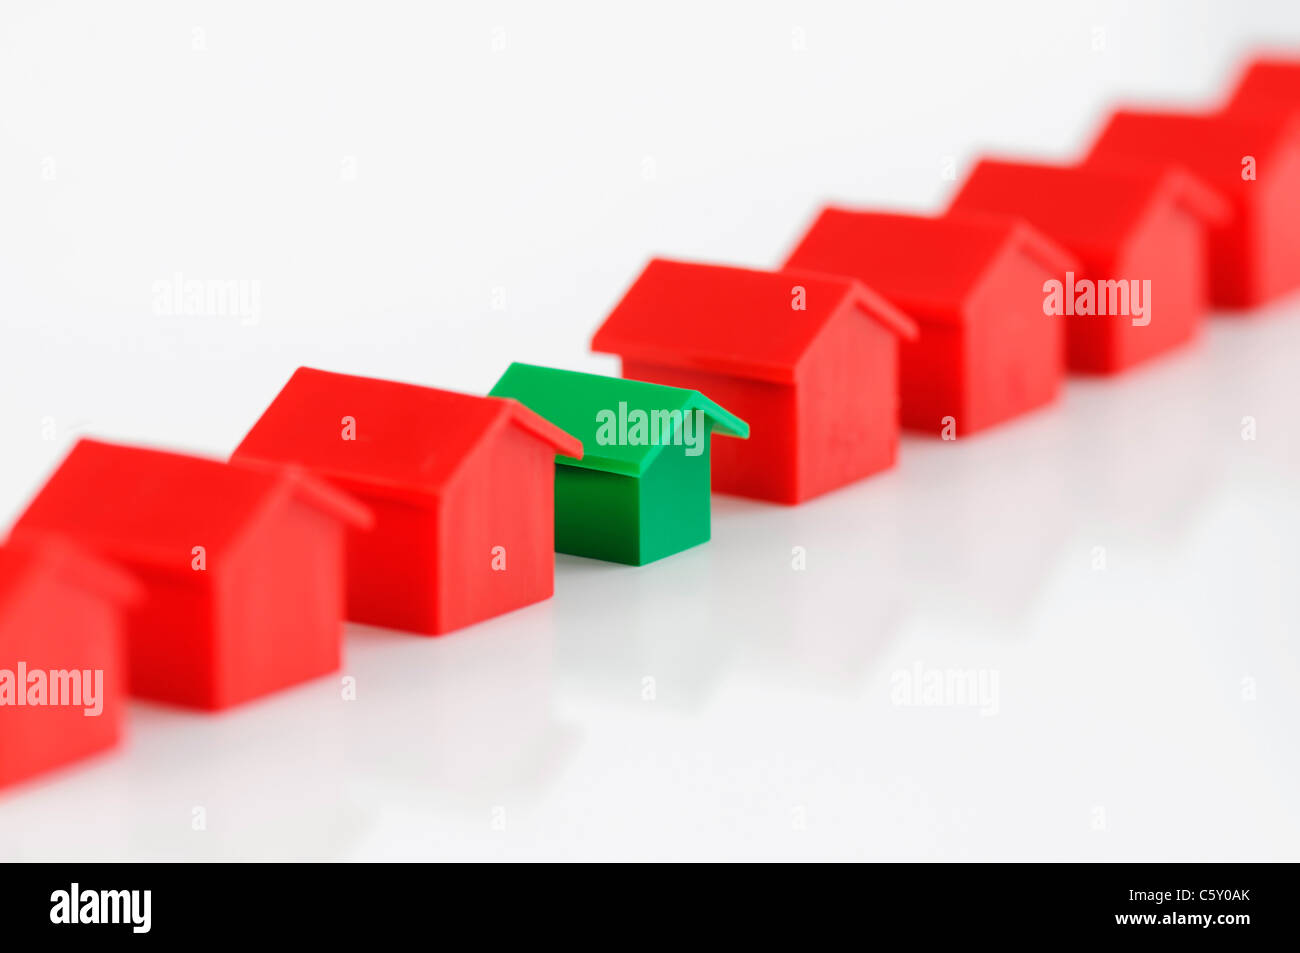 Row of model houses. Conceptual real estate image. Stock Photo